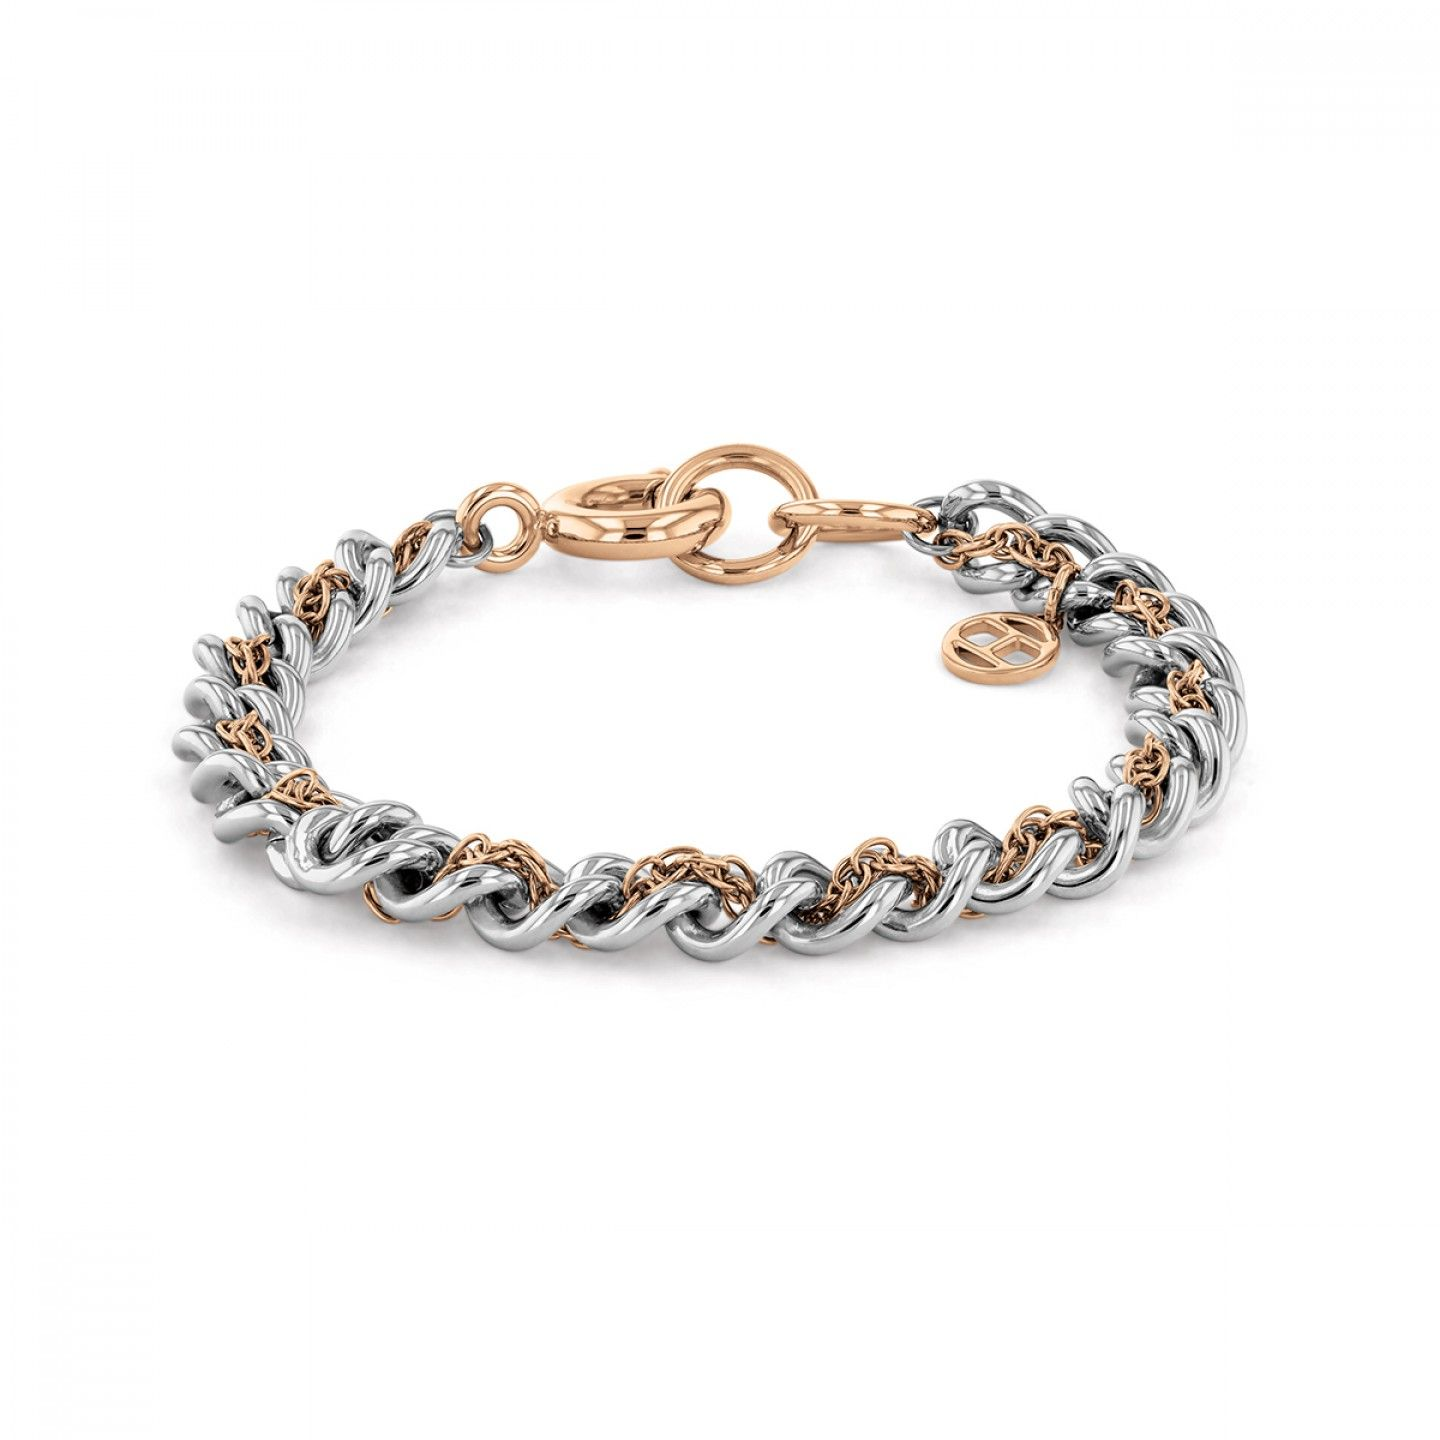 PULSEIRA TOMMY HILFIGER DOUBLE LINK BICOLOR